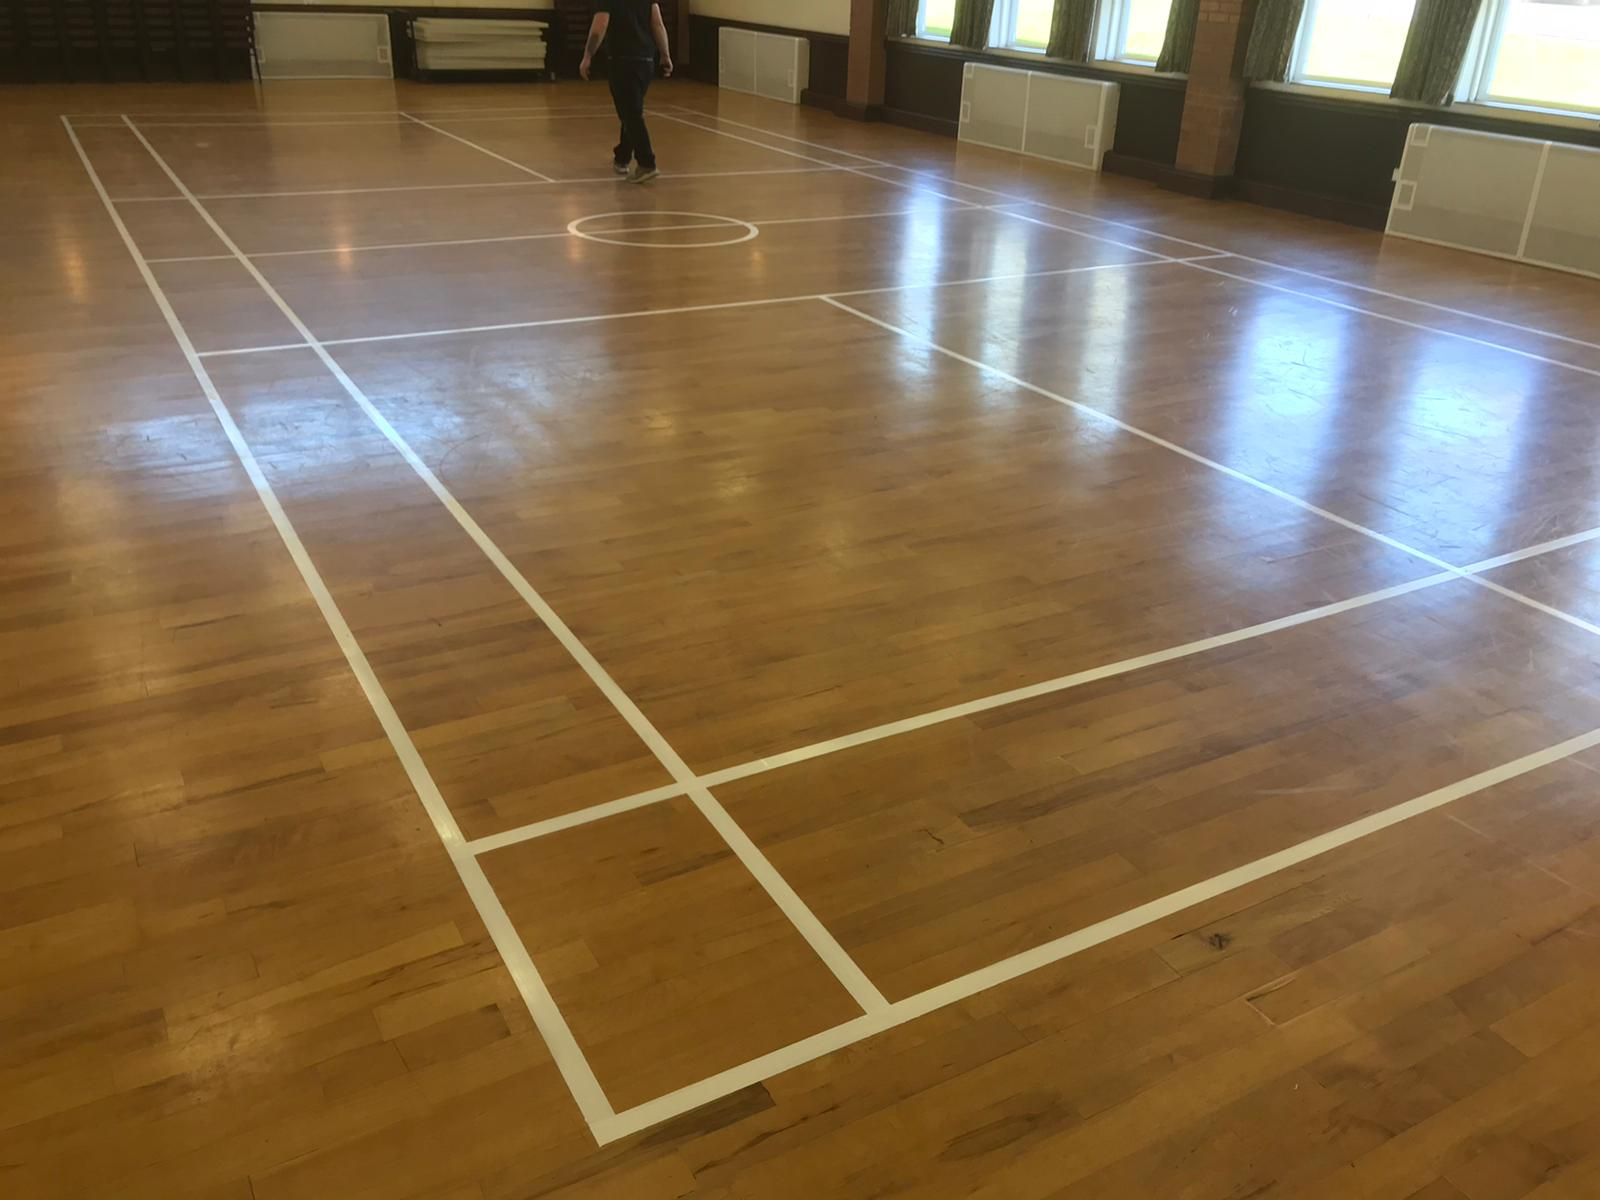 A refreshed timber sports floor for Kelsall Community Centre